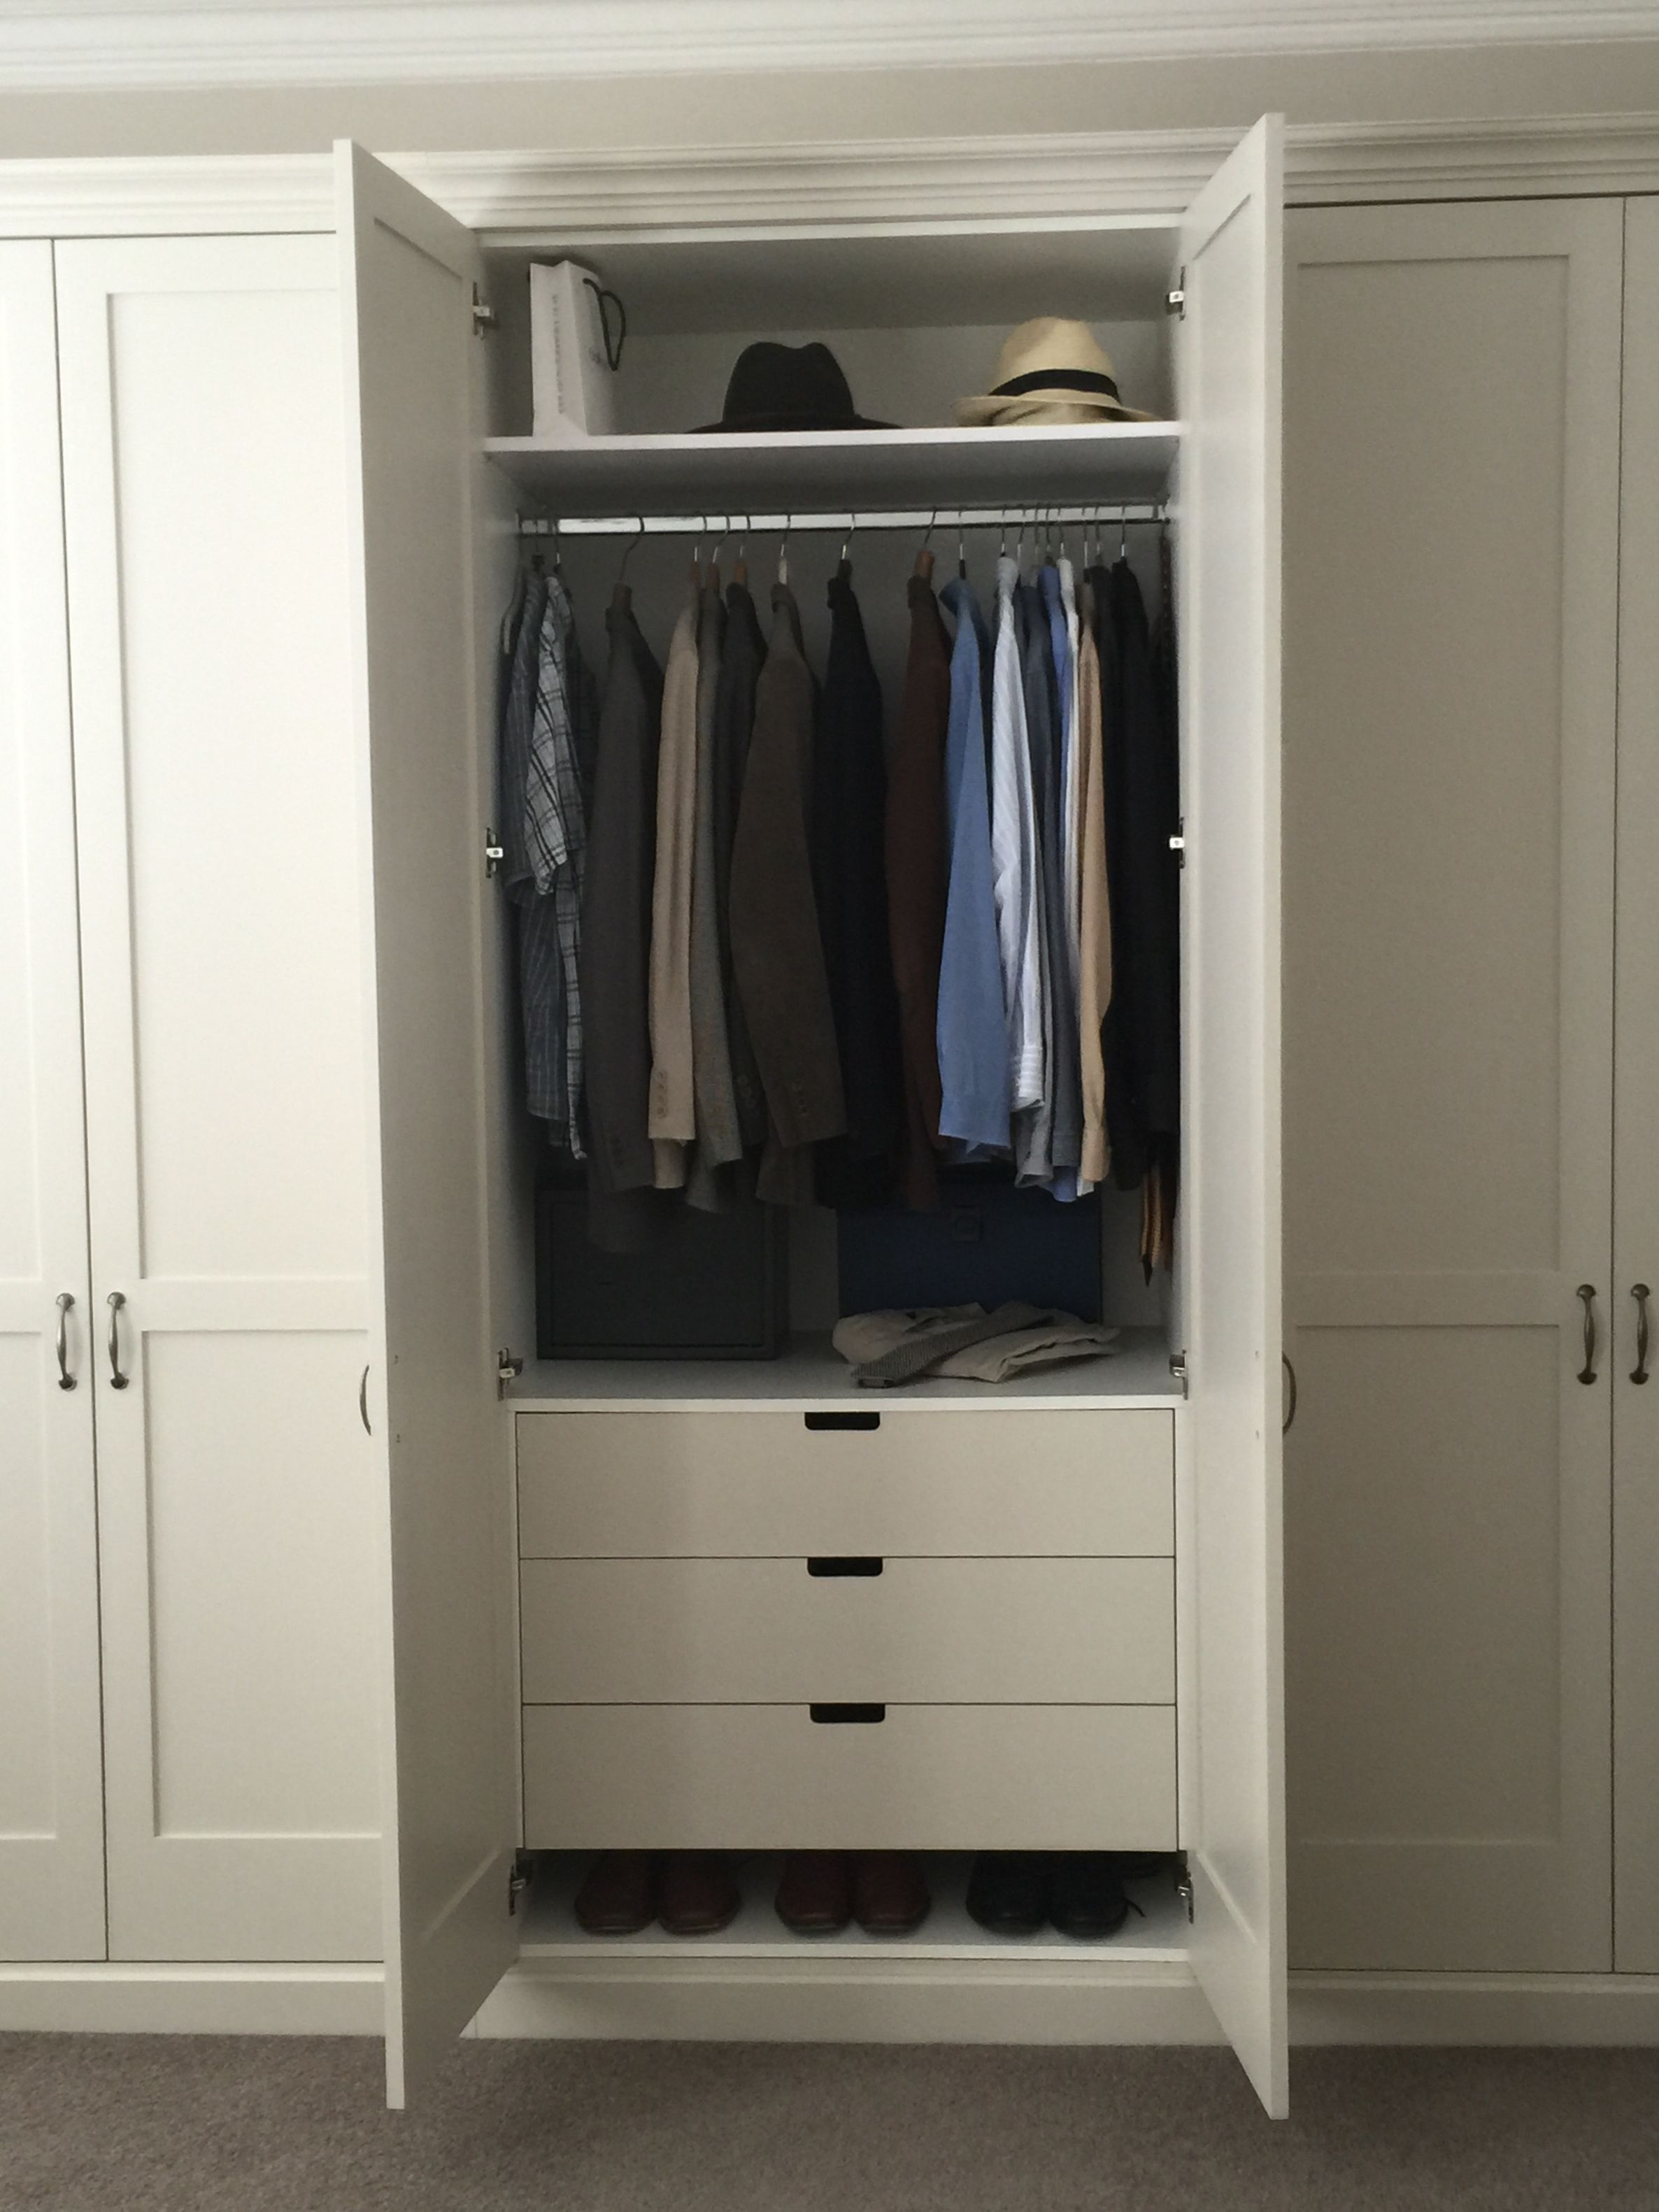 traditional shaker wardrobes with drawers inside shelves and